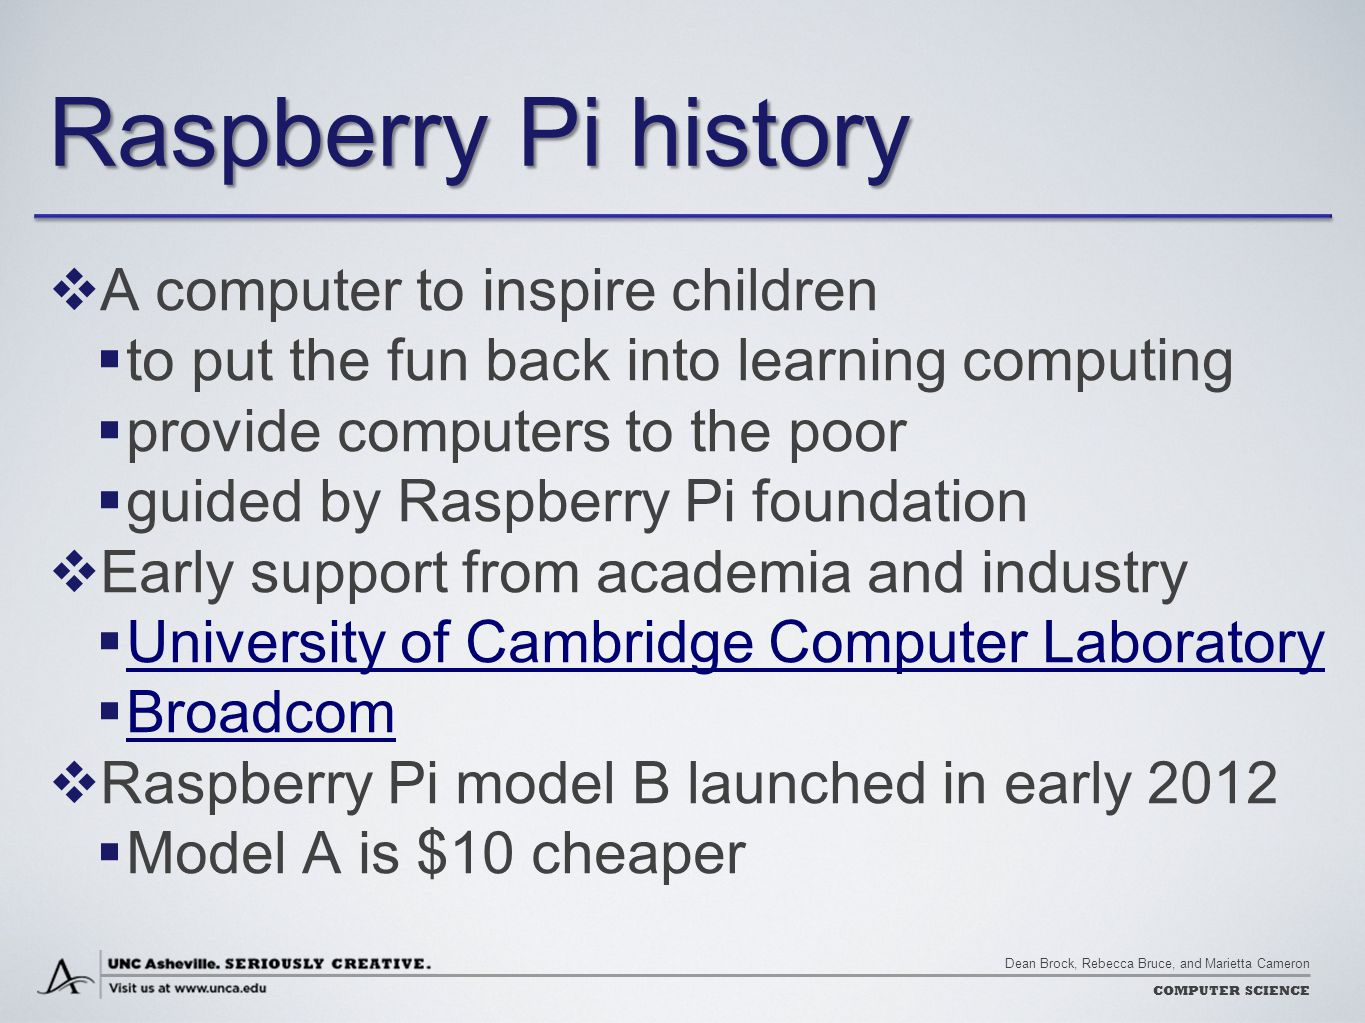 Dean Brock, Rebecca Bruce, and Marietta Cameron COMPUTER SCIENCE Raspberry Pi history  A computer to inspire children  to put the fun back into learning computing  provide computers to the poor  guided by Raspberry Pi foundation  Early support from academia and industry  University of Cambridge Computer Laboratory University of Cambridge Computer Laboratory  Broadcom Broadcom  Raspberry Pi model B launched in early 2012  Model A is $10 cheaper